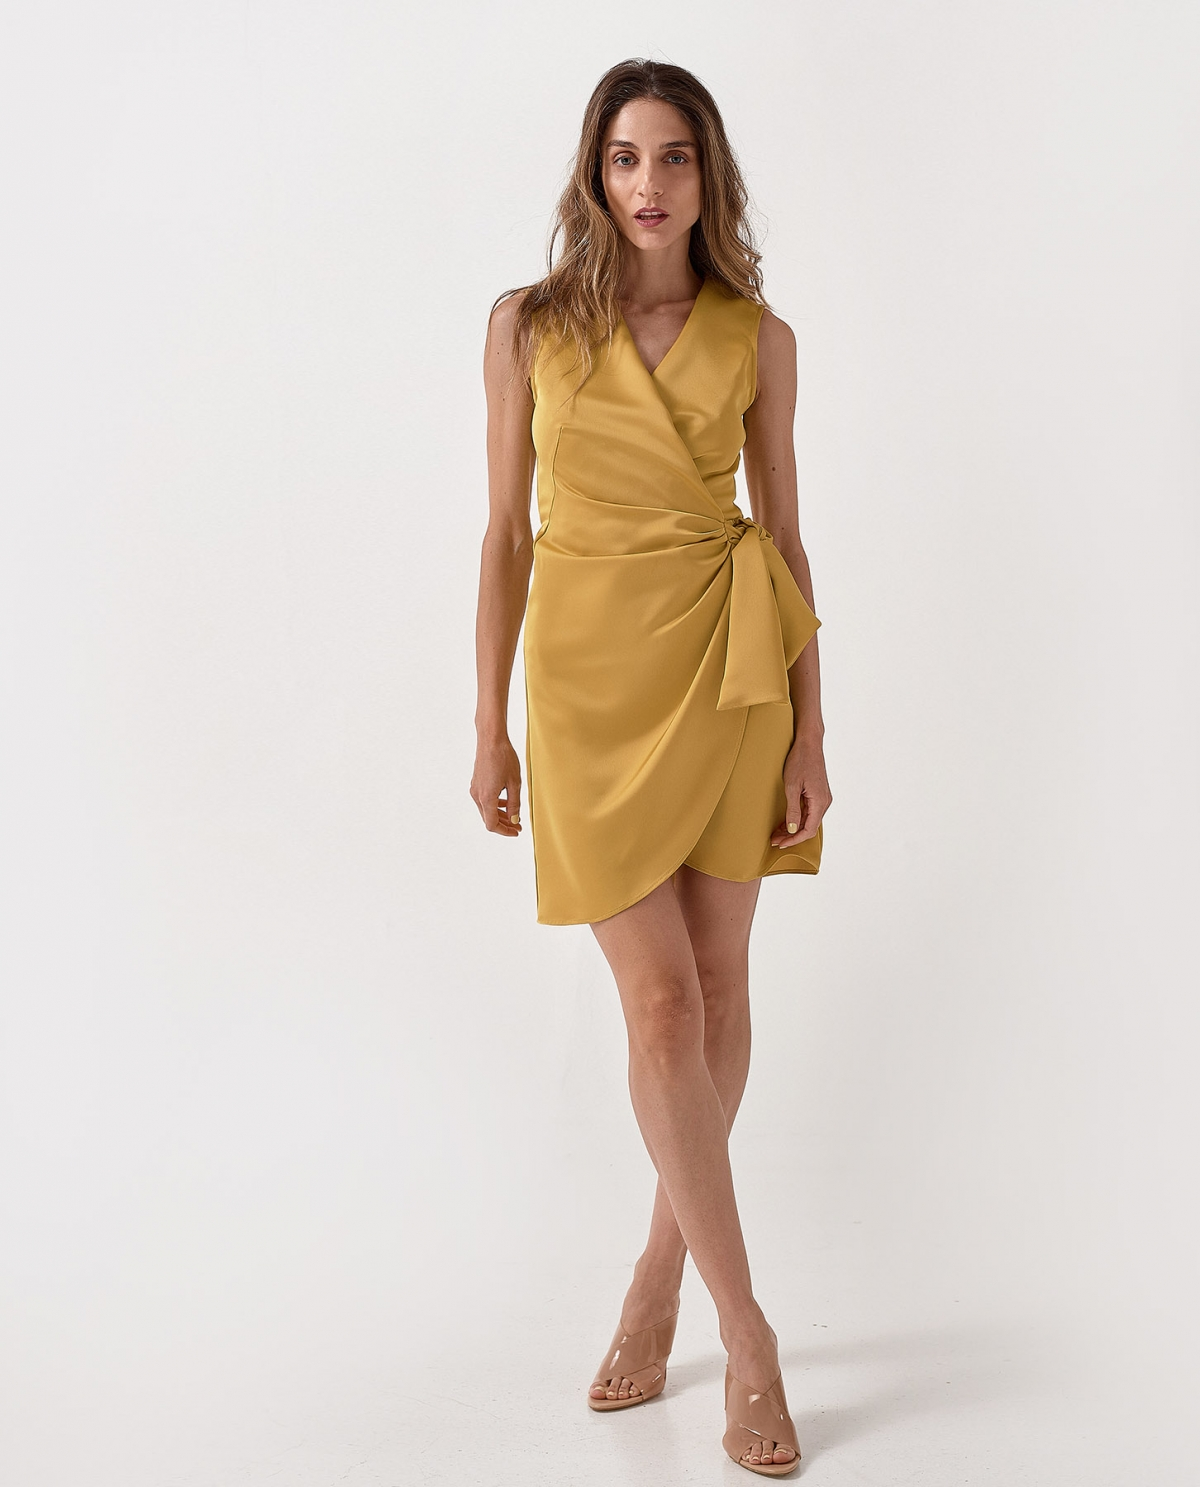 Capri Yellow Dress